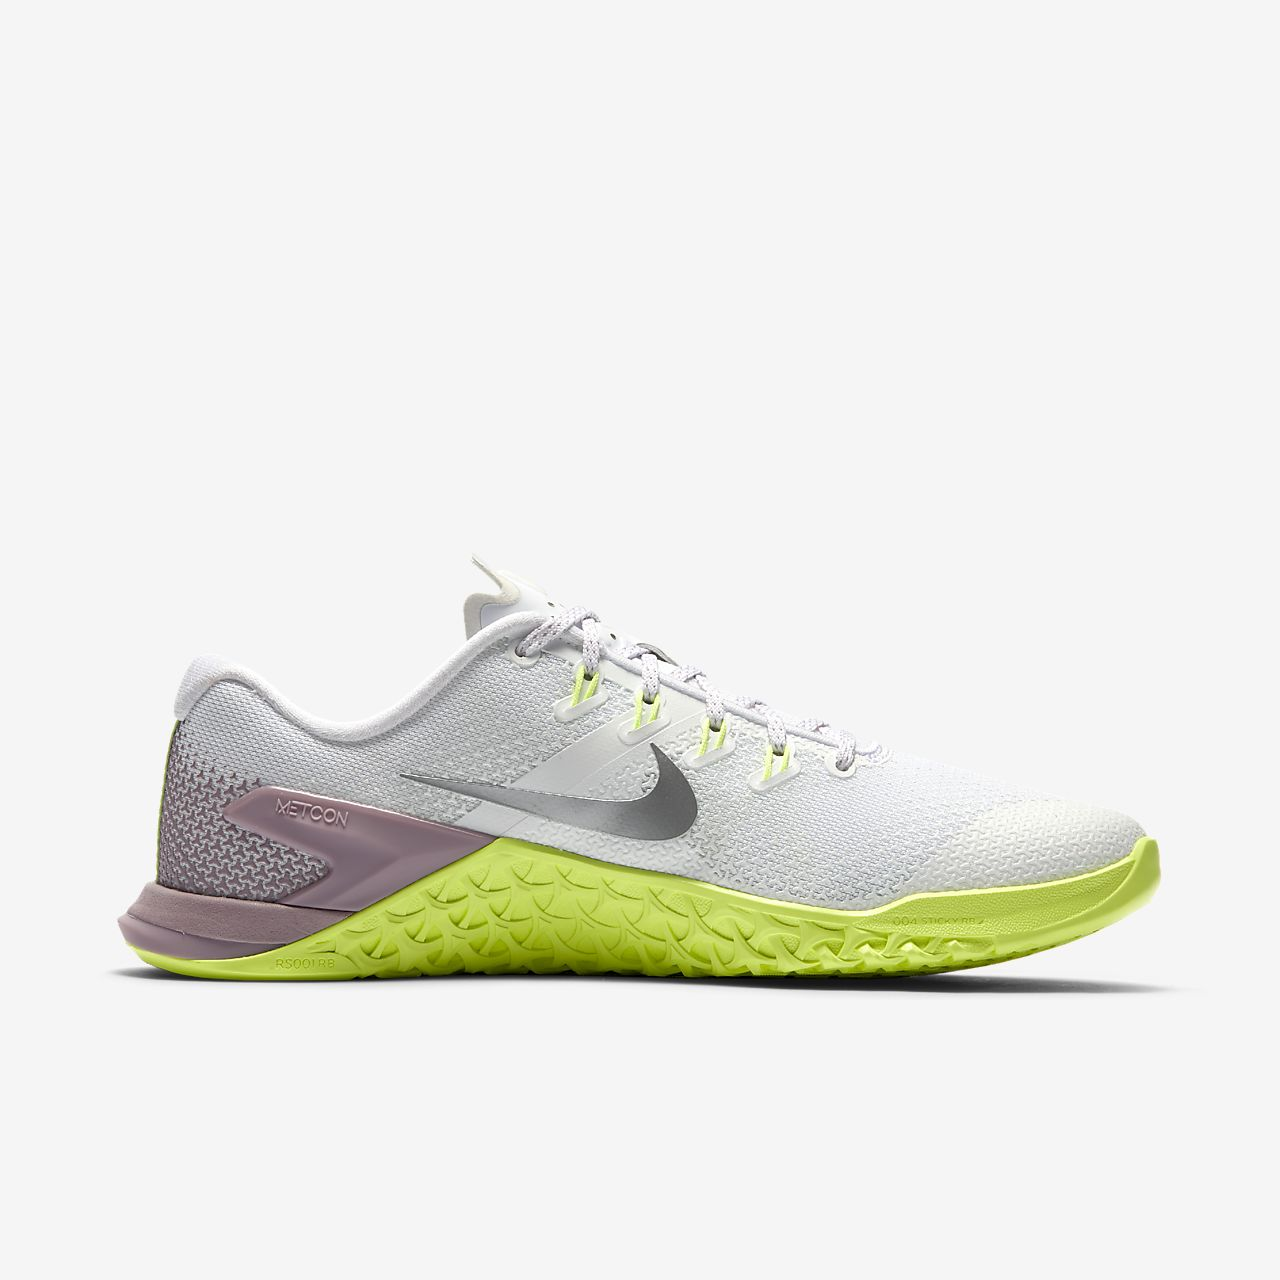 nike metcon 4 women 39 s cross training weightlifting shoe. Black Bedroom Furniture Sets. Home Design Ideas